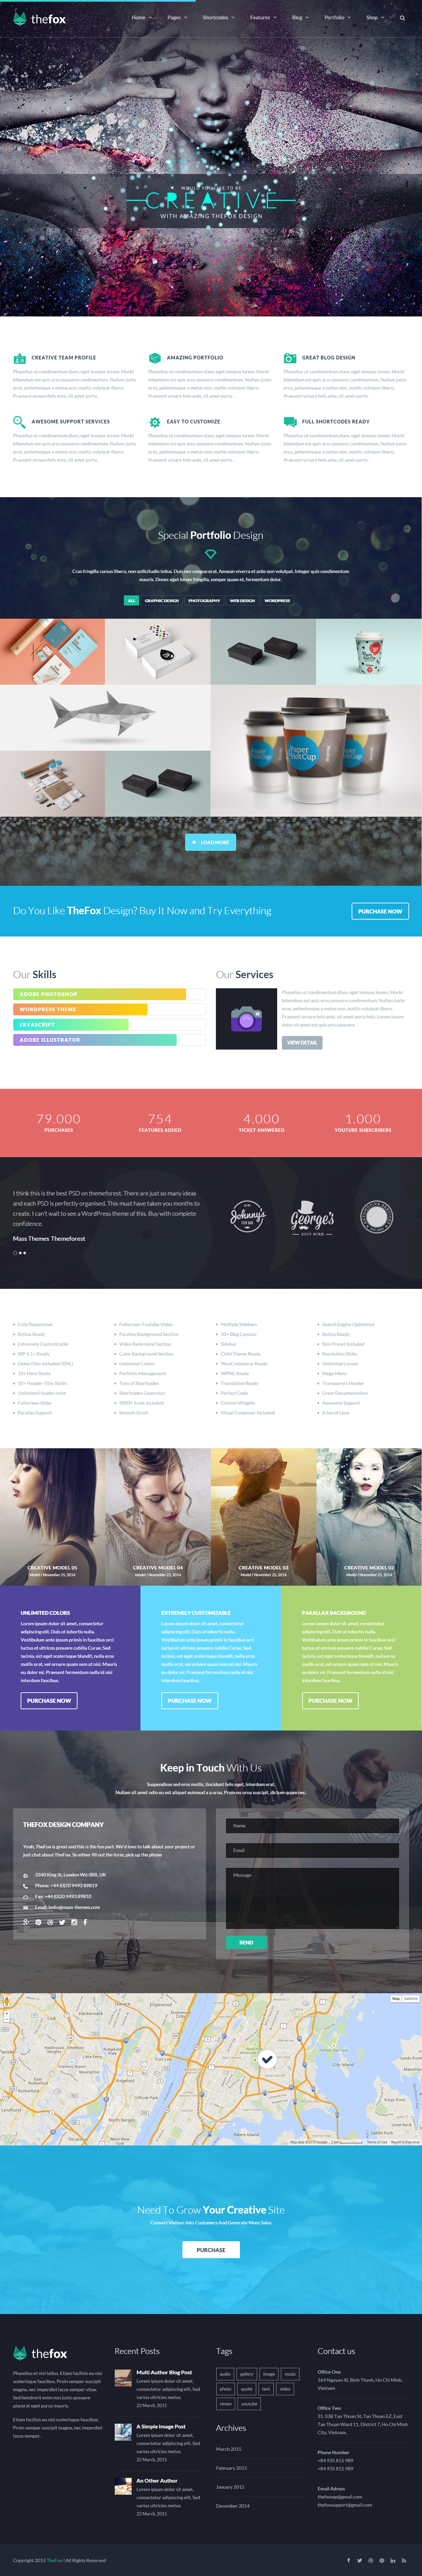 35 best responsive video background wordpress themes 2017